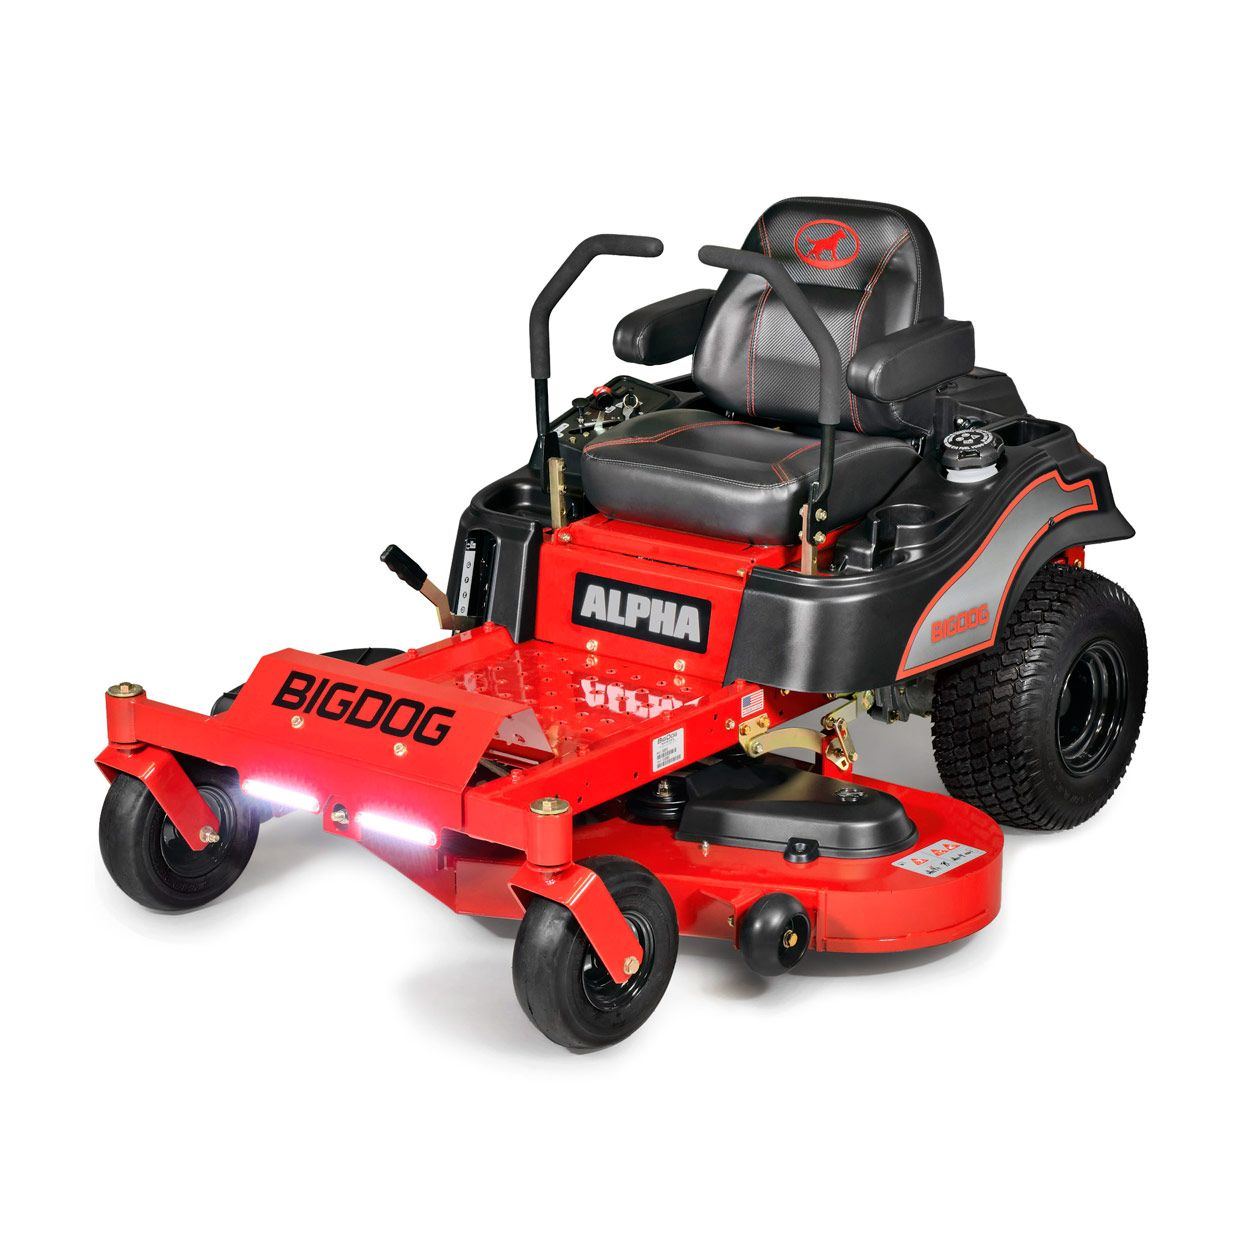 Residential And Commercial Zero Turn Radius Lawn Mowers And Tractors Bigdog Mower Co Mower Steel Deck Landscaping Equipment